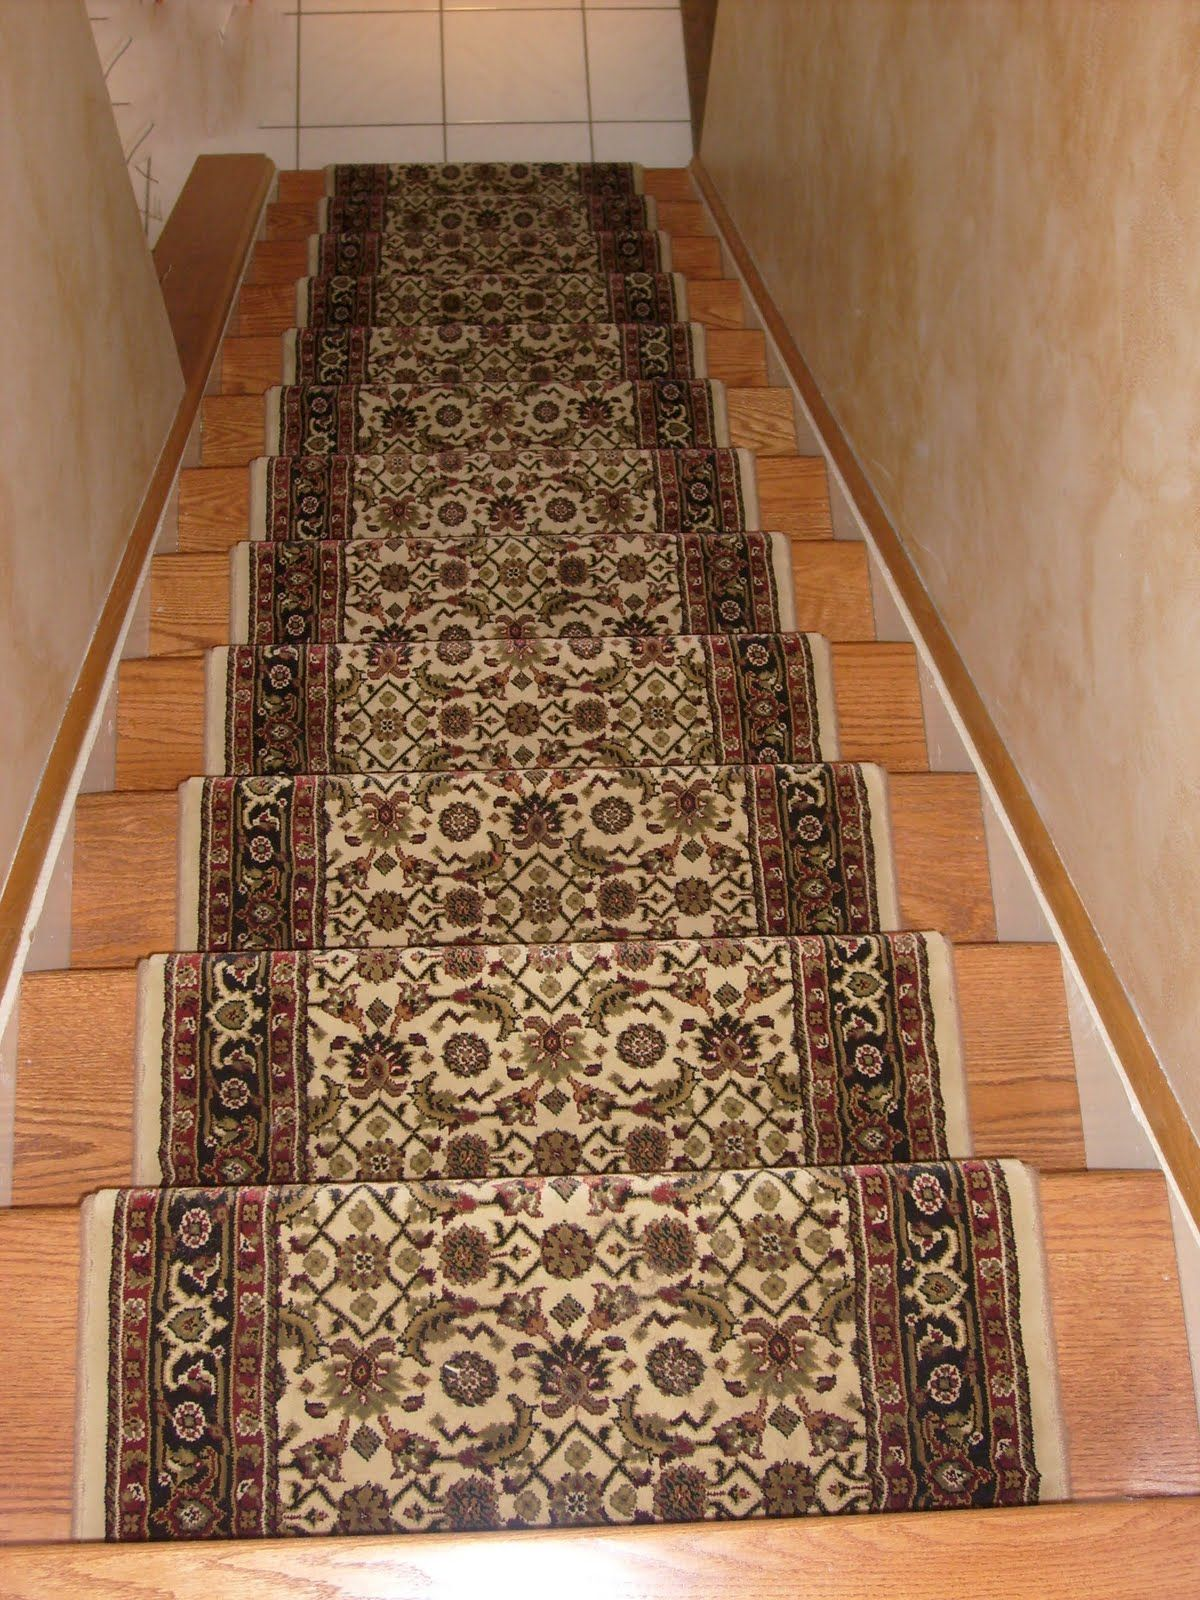 Designer Oriental Floral Carpet Runner For Stairs On Wooden Foot Stairs As  Well As Gray Wall